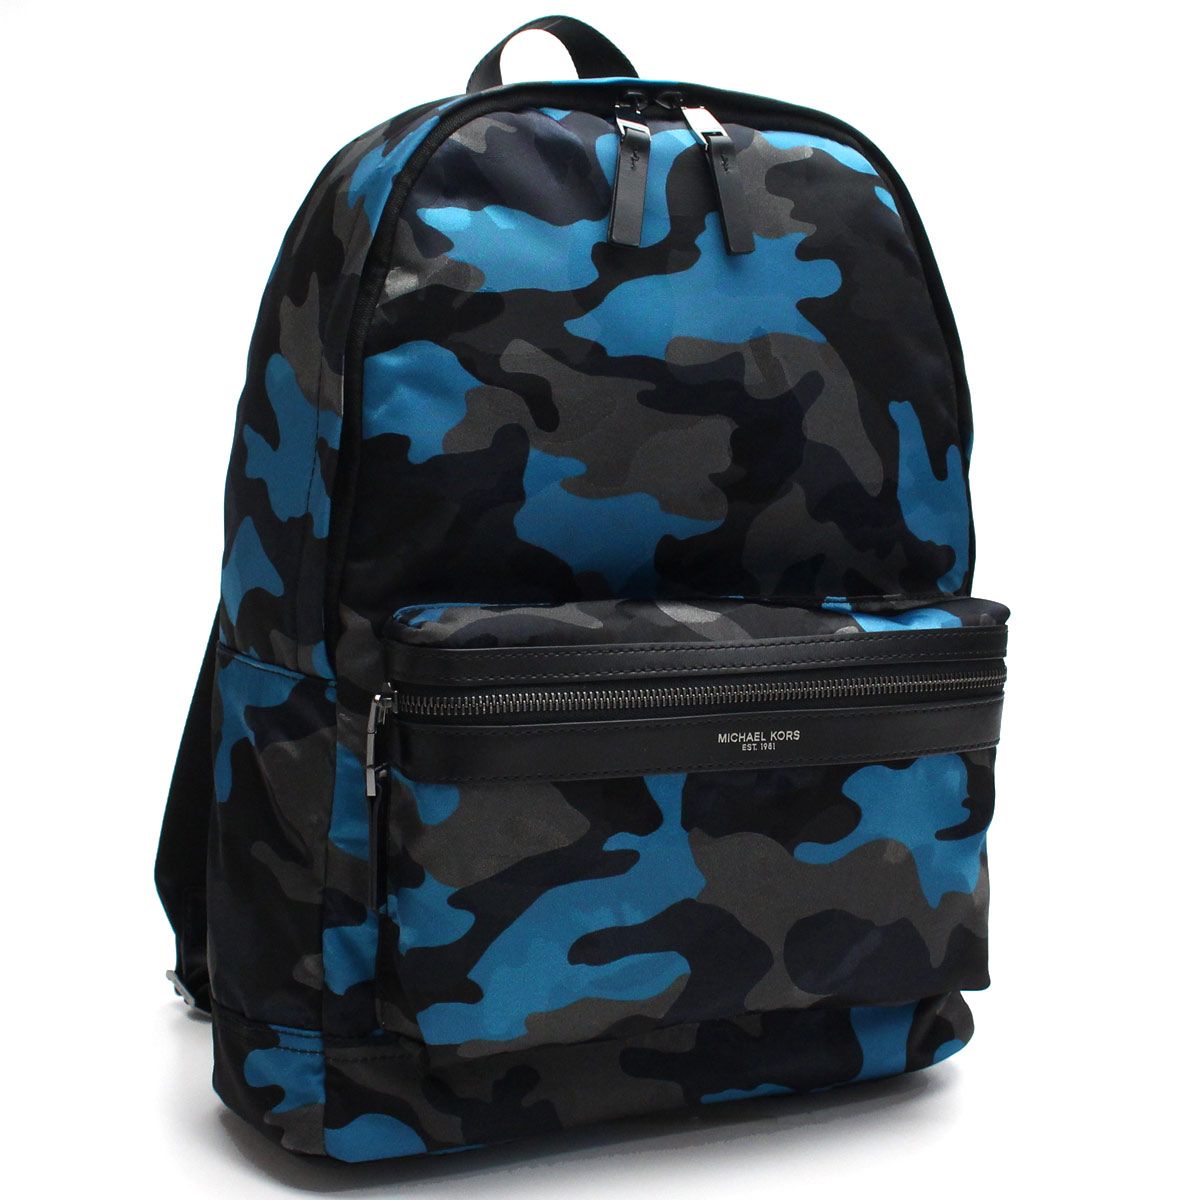 419948dfd90f Bighit The total brand wholesale: Michael Kors MICHAEL KORS rucksack KENT  Kent blue camouflage backpack 33F7LKNB2R MIDNIGHT multicolored | Rakuten  Global ...